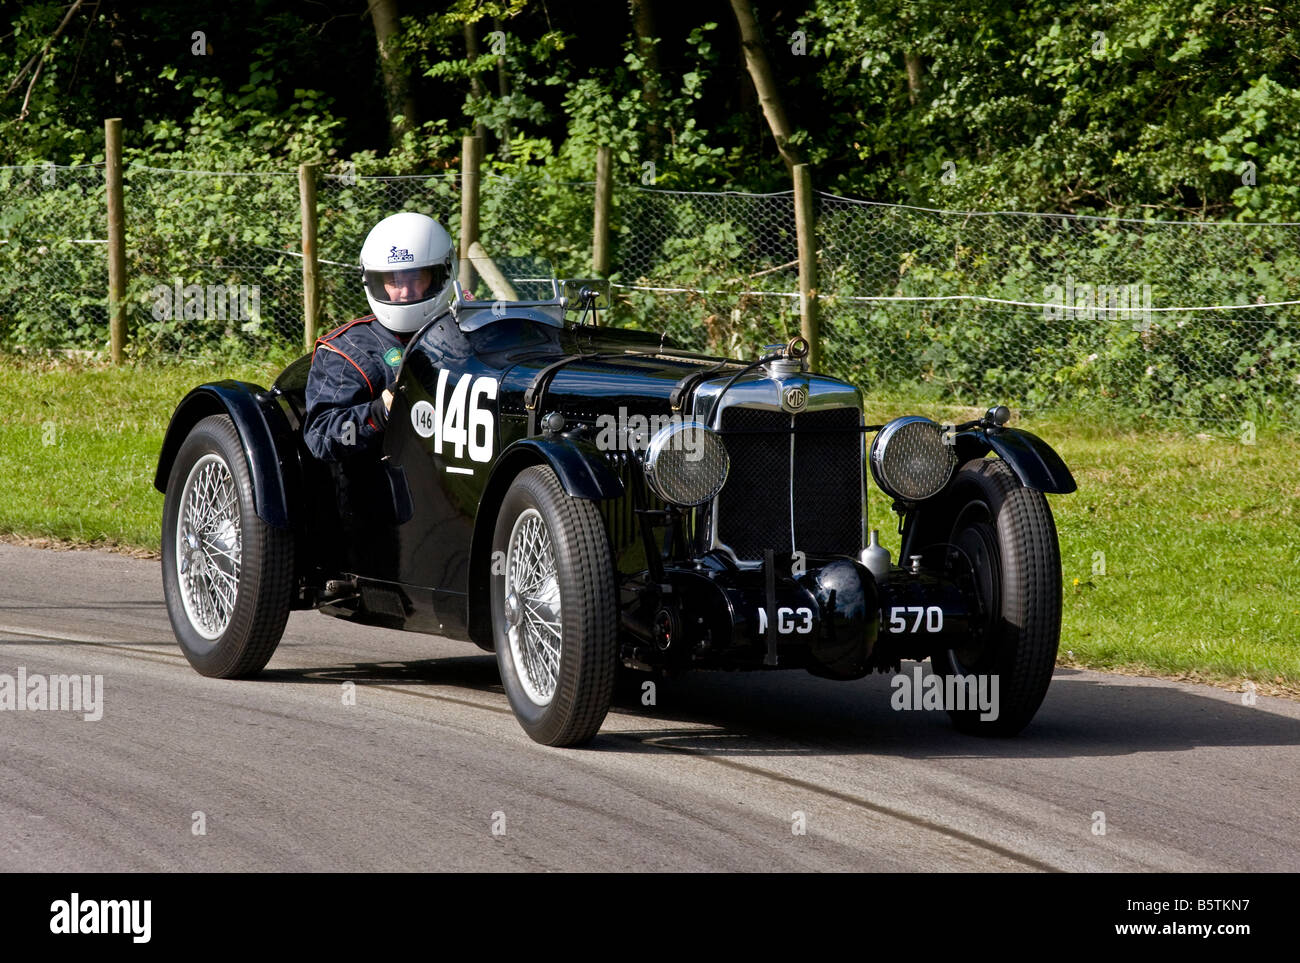 k3 stock photos \u0026 k3 stock images alamy1933 mg k3 with driver peter green at goodwood festival of speed, sussex, uk